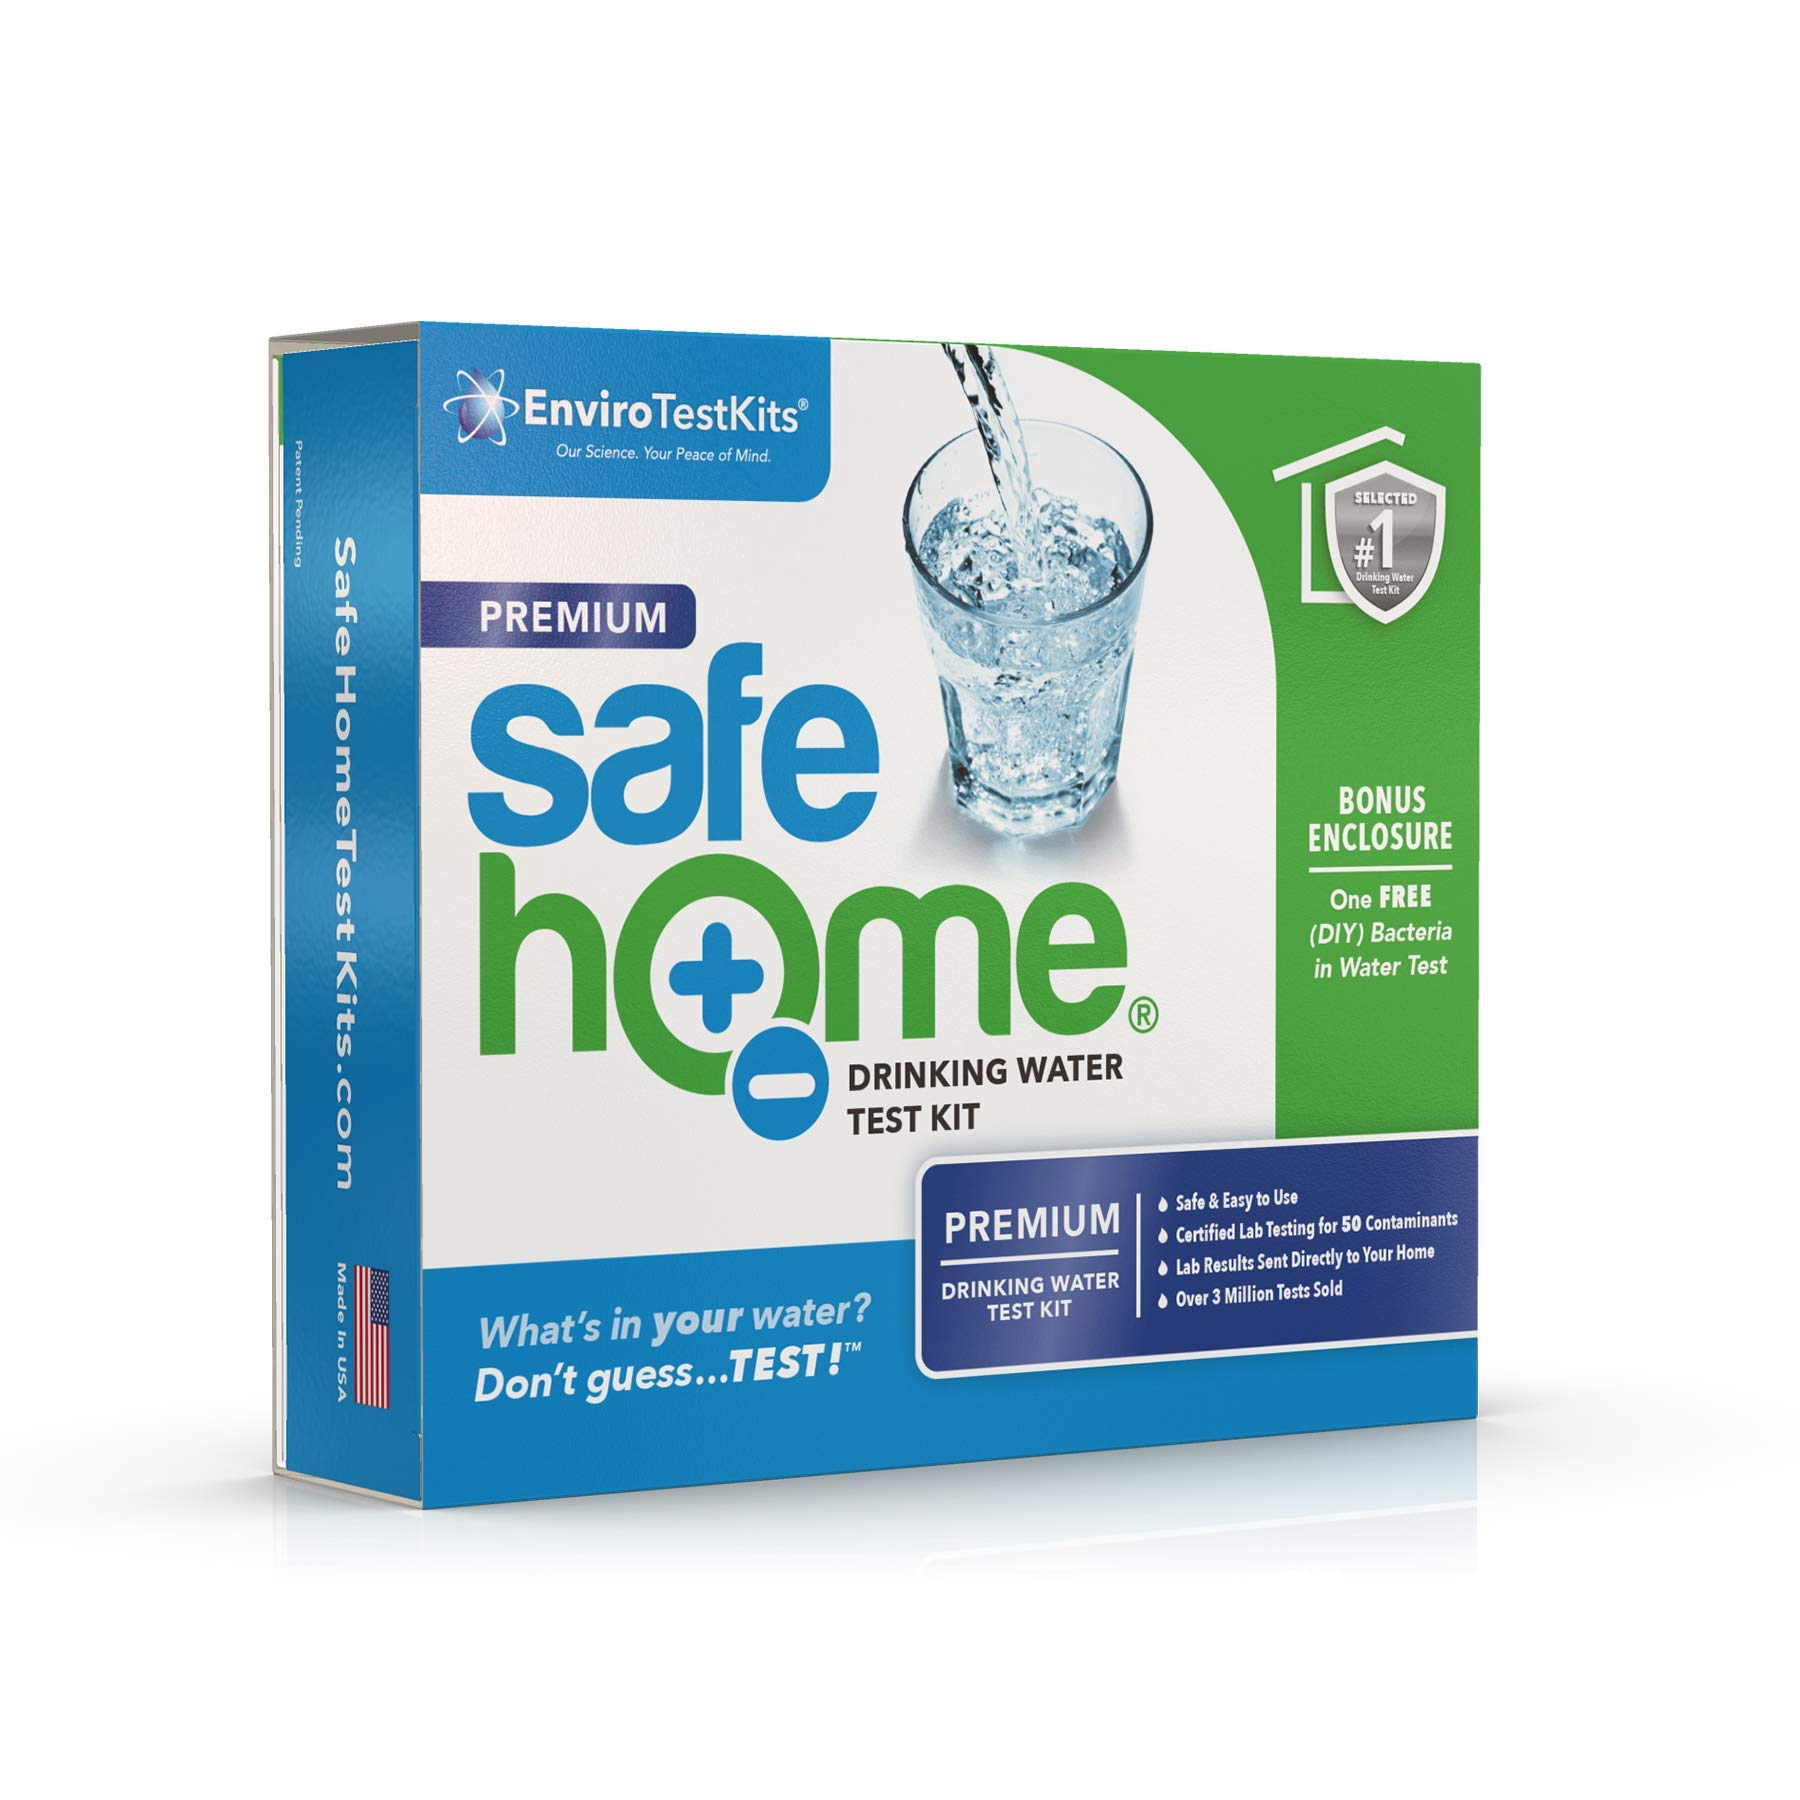 Safe Home PREMIUM Drinking Water Test Kit - Our #1 Selling Kit for Testing CITY & WELL WATER - 50 Contaminants Tested at Our EPA Certified Laboratory - Don't Guess...TEST! by Safe Home